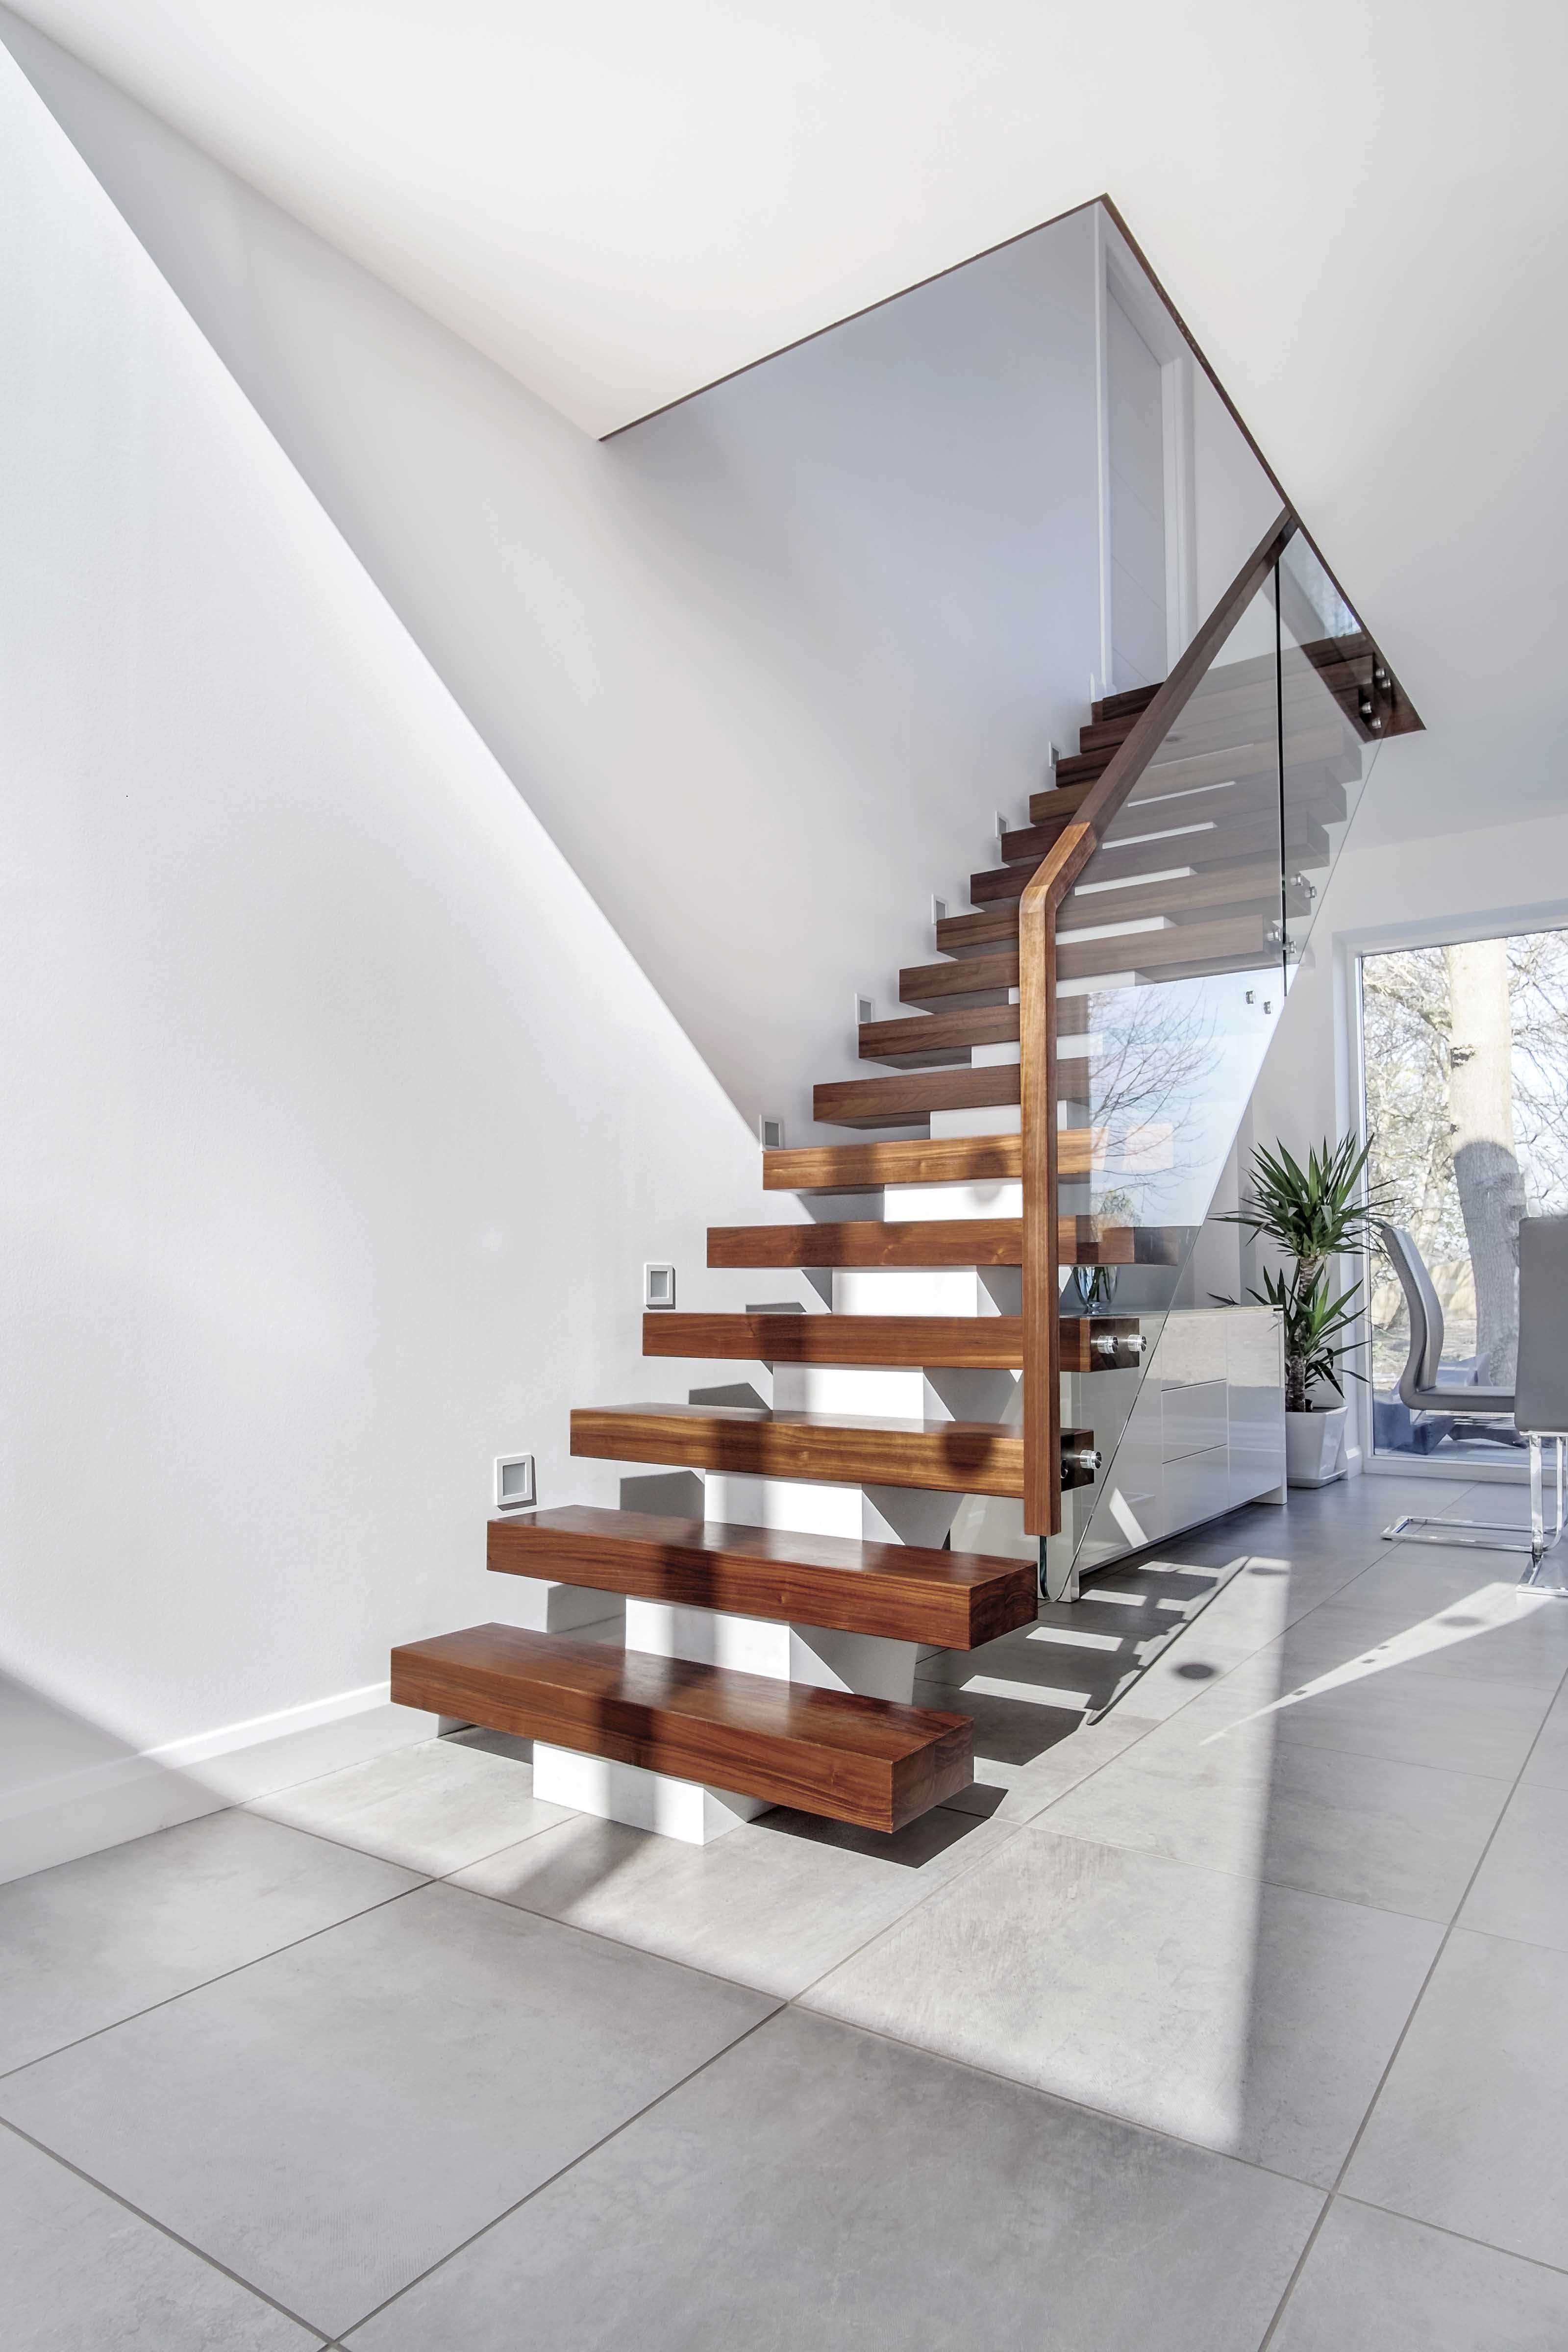 Modern domestic interior with floating central stringer feature staircase with walnut treads, handrail and glass balustrade. White walls with grey floor tiles and large potted plant.